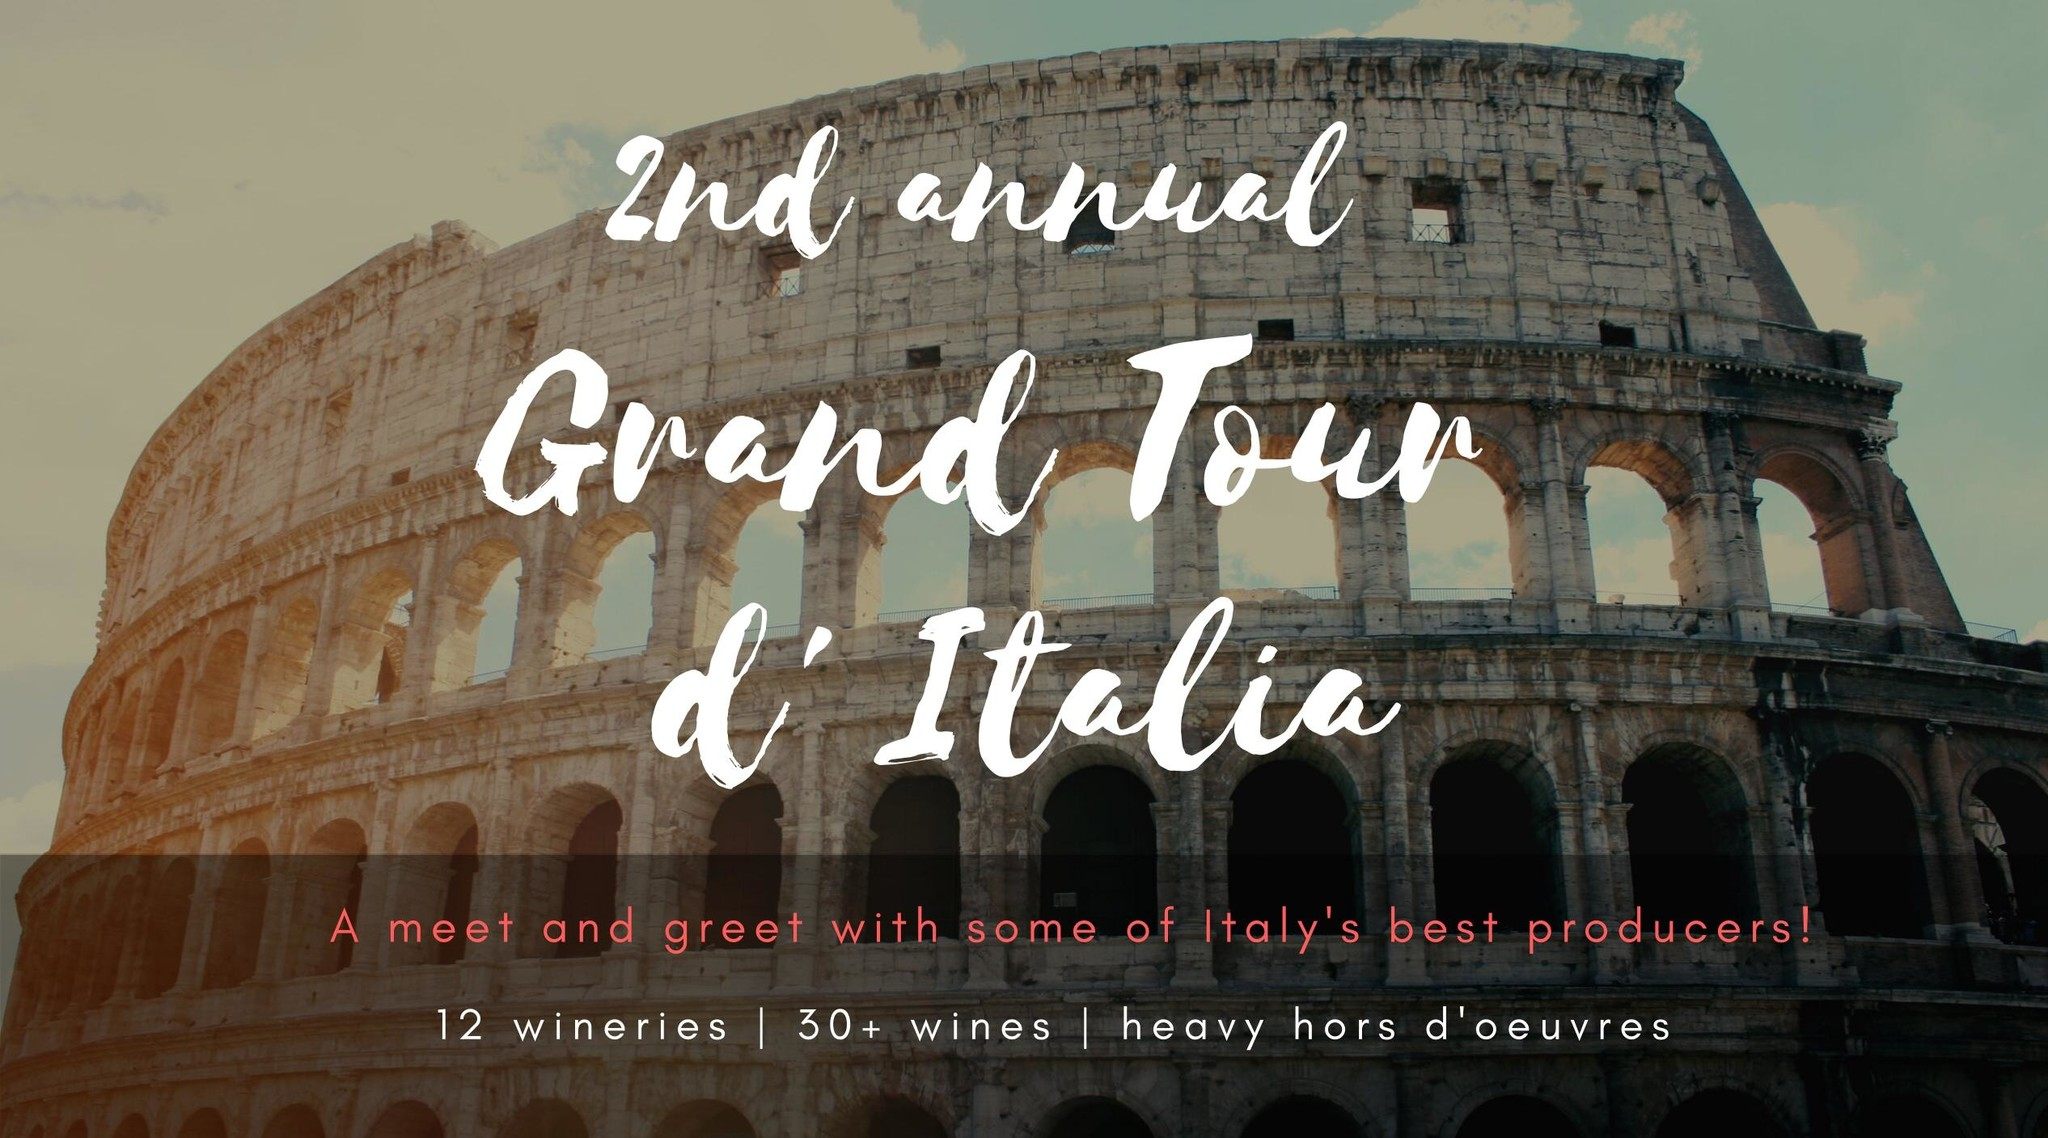 2nd Annual Grand Tour of Italy